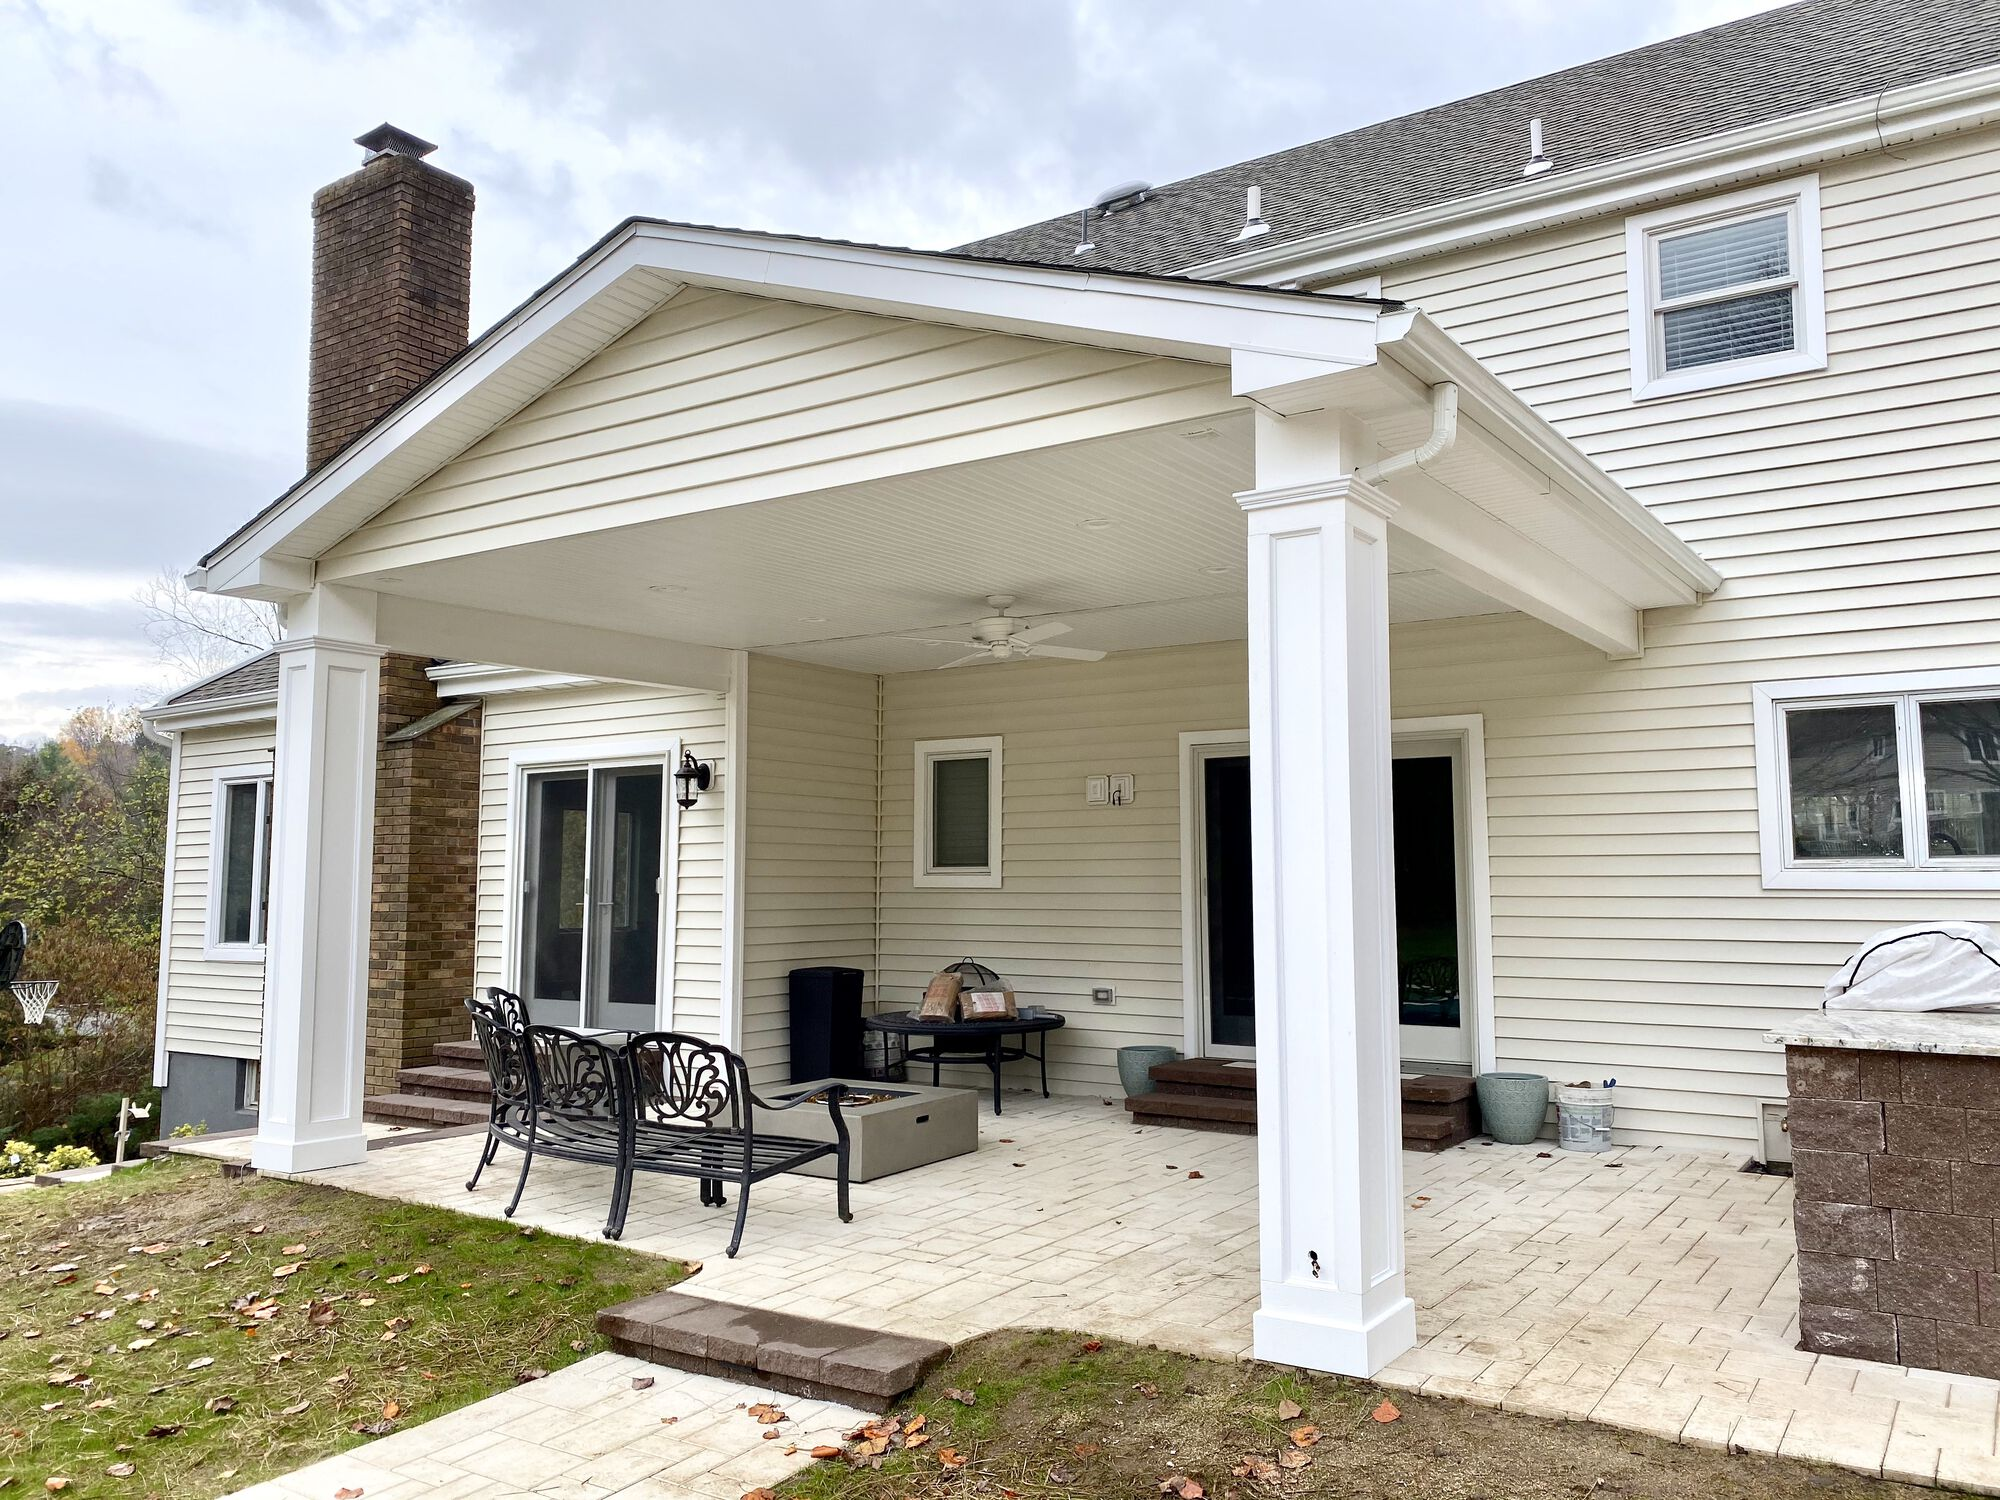 Portico Covered Cambridge Paver Patio, Charter Oak Siding, GAF Roofing in Upper Saddle River, Bergen County NJ